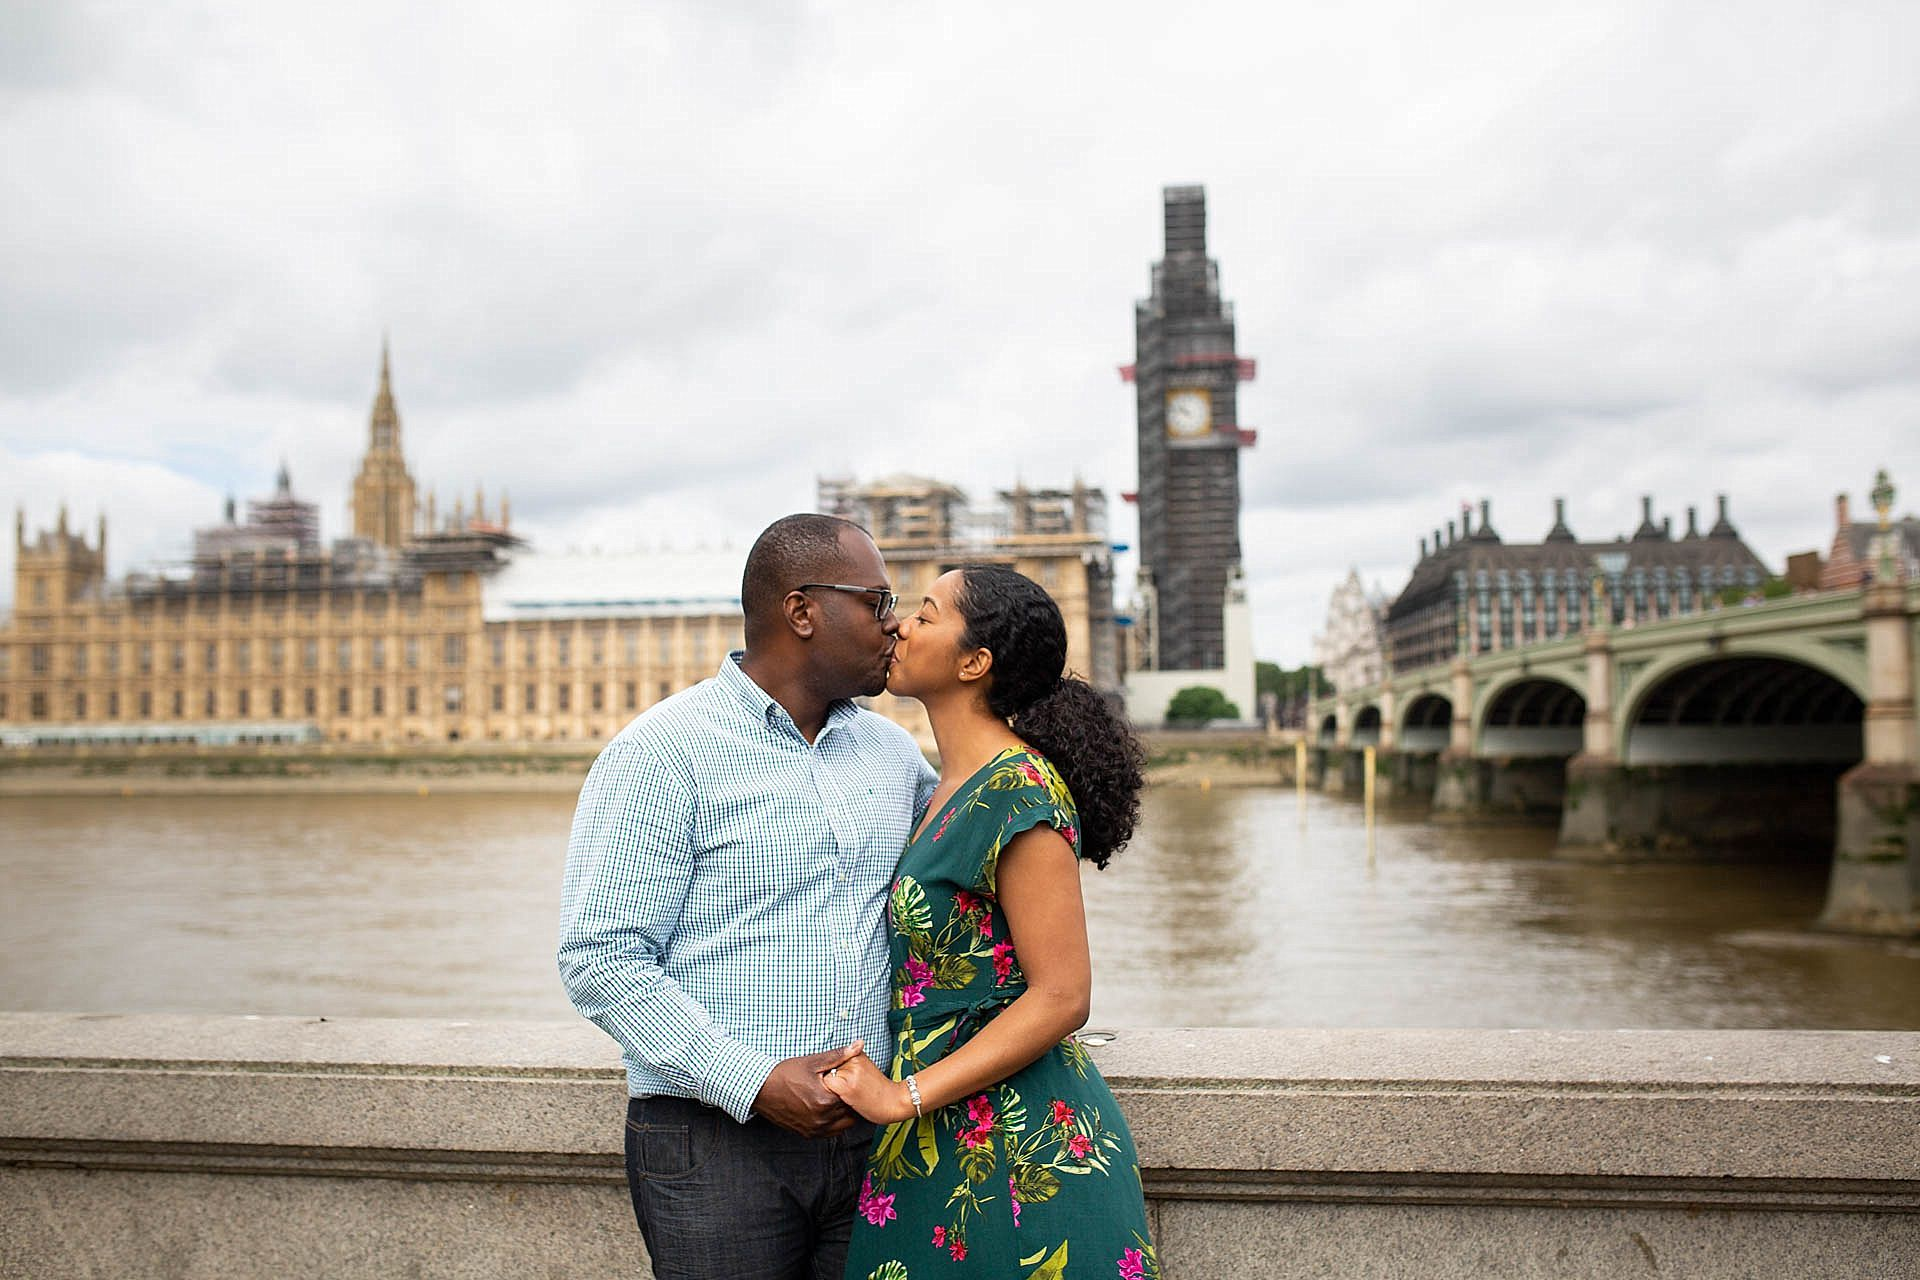 Westminster wedding photographer